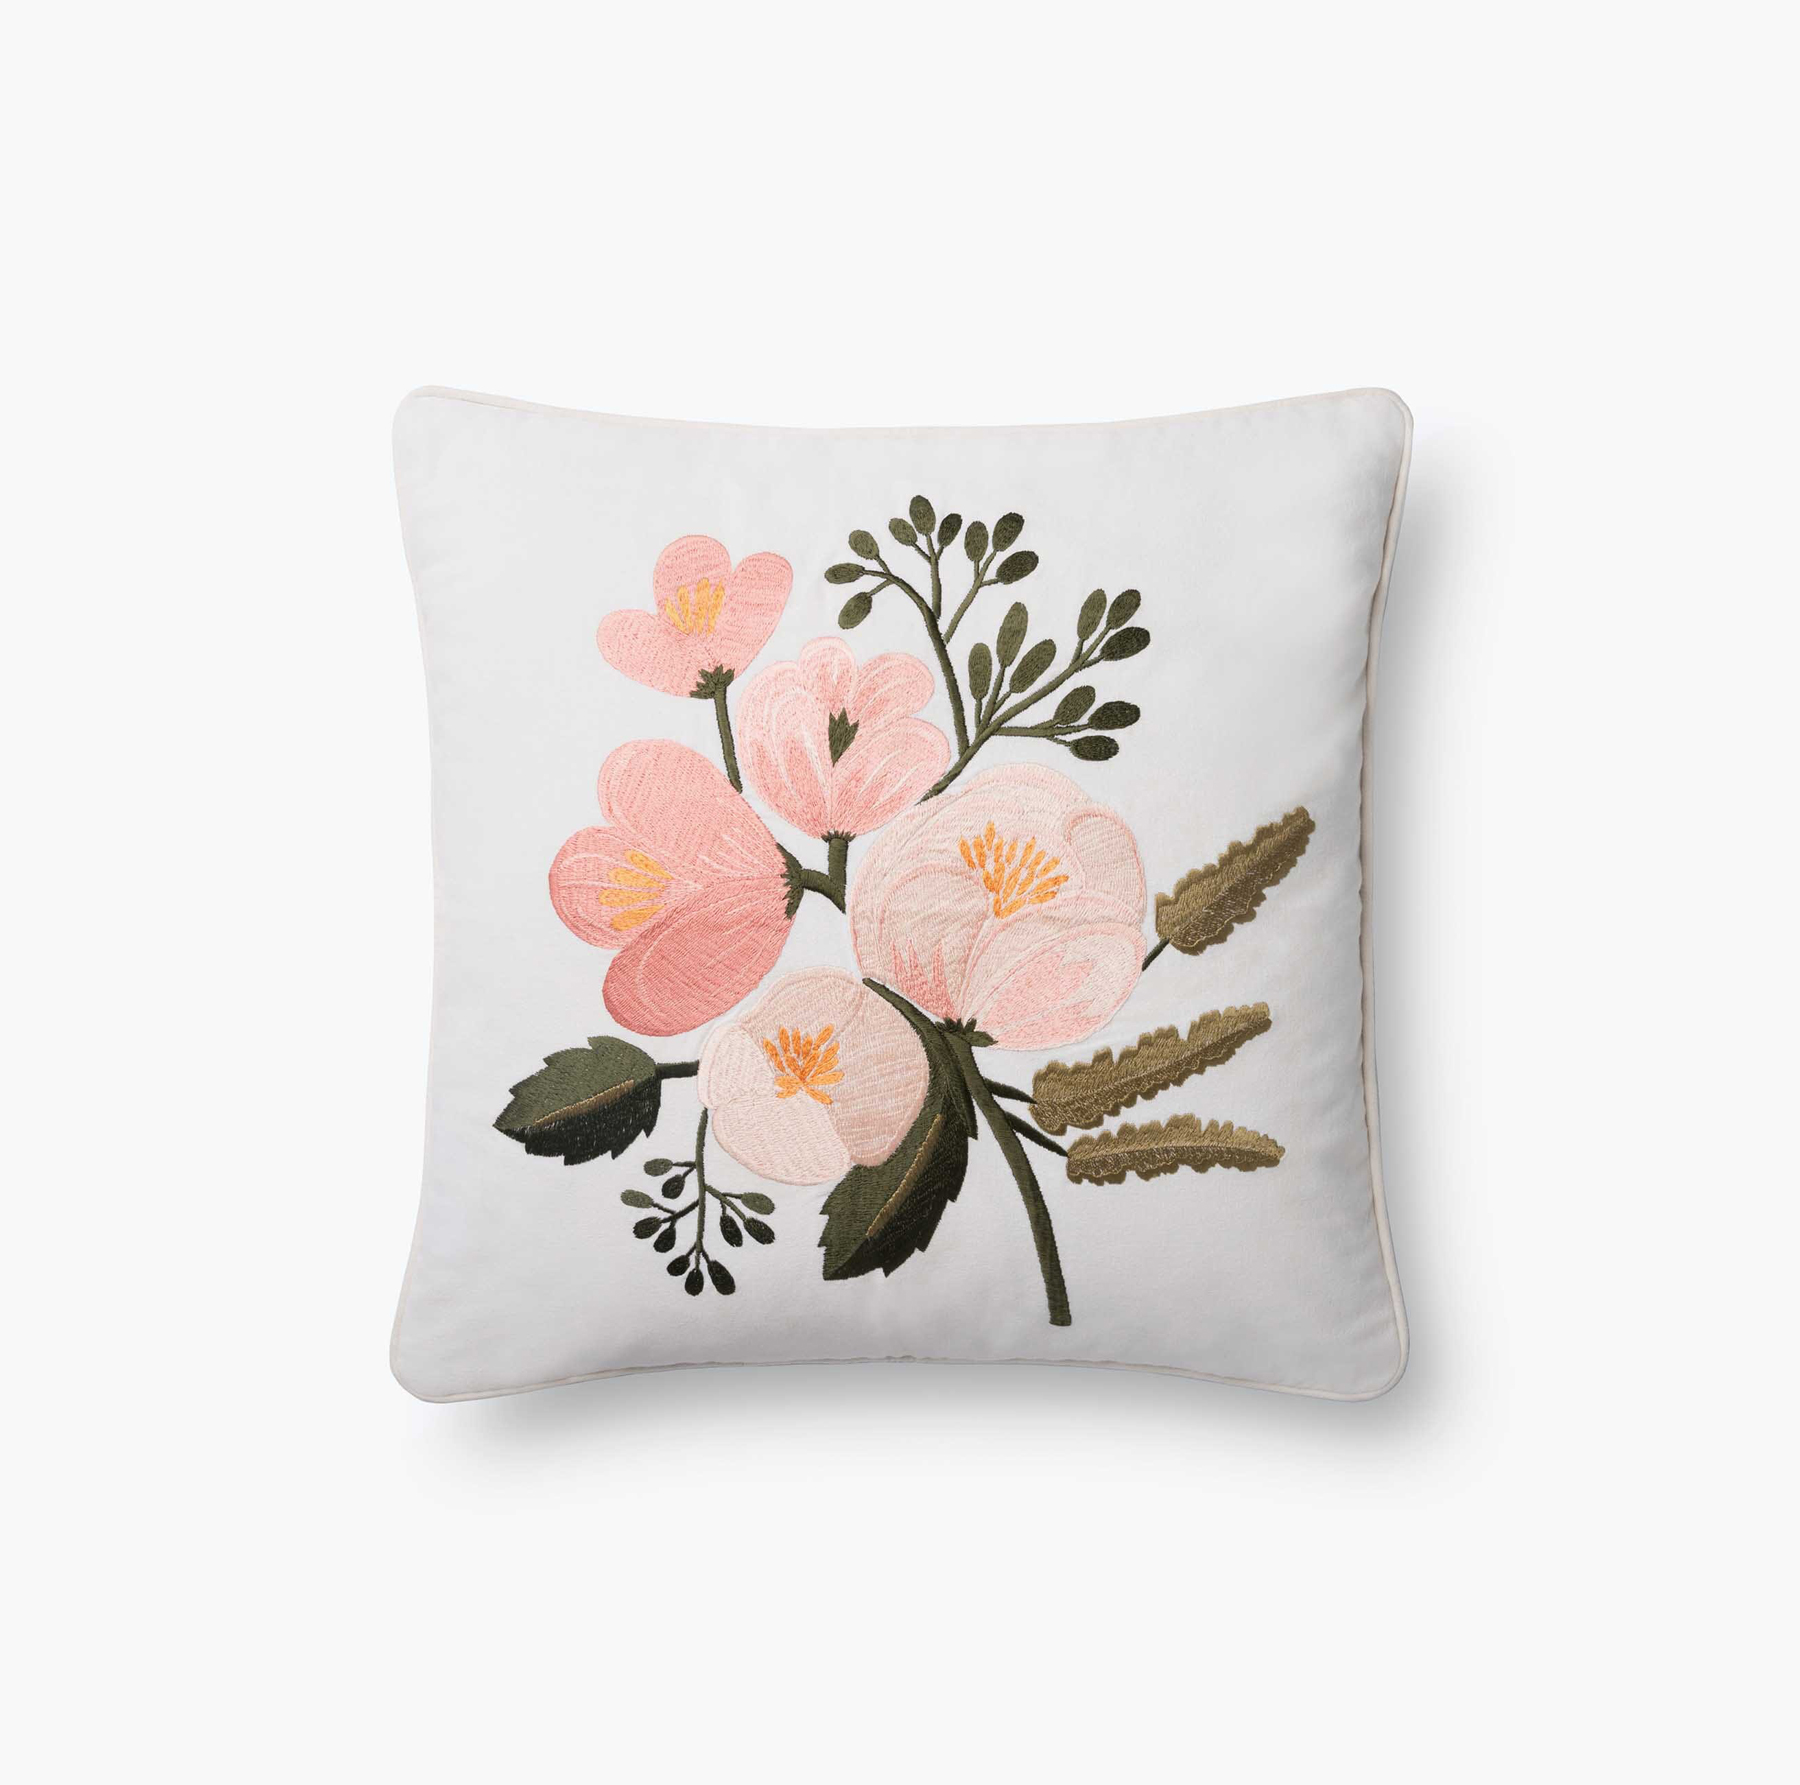 Valentine's Day gifts for her, wife, girlfriend - Rifle Paper Co. Botanical Embroidered Pillow